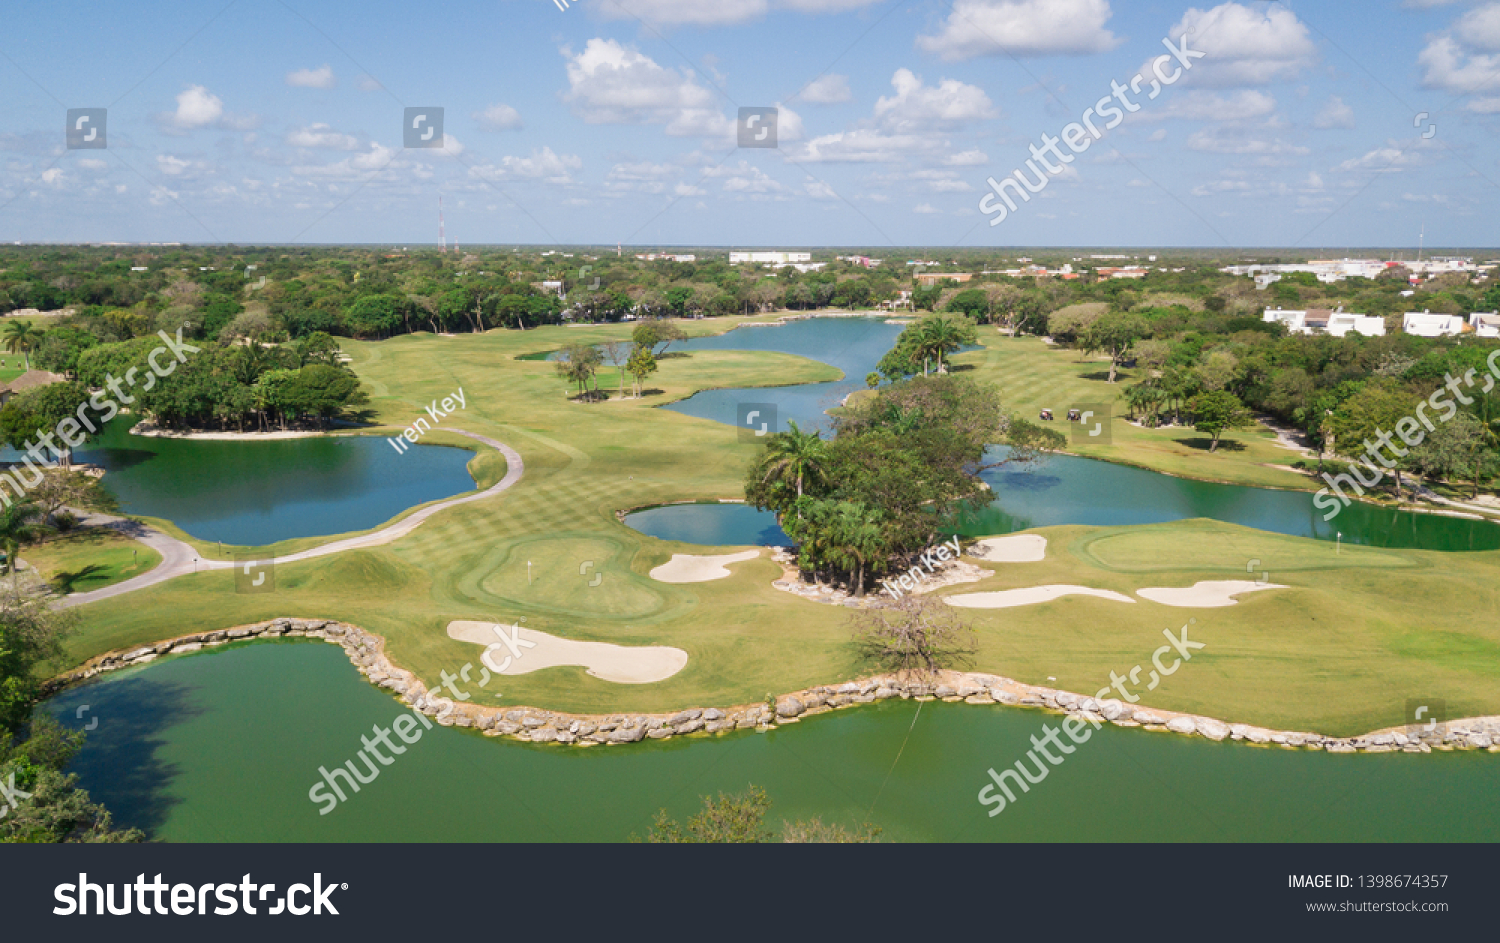 Golf course with gorgeous green and pond. Aerial view of a beautiful green golf course #1398674357